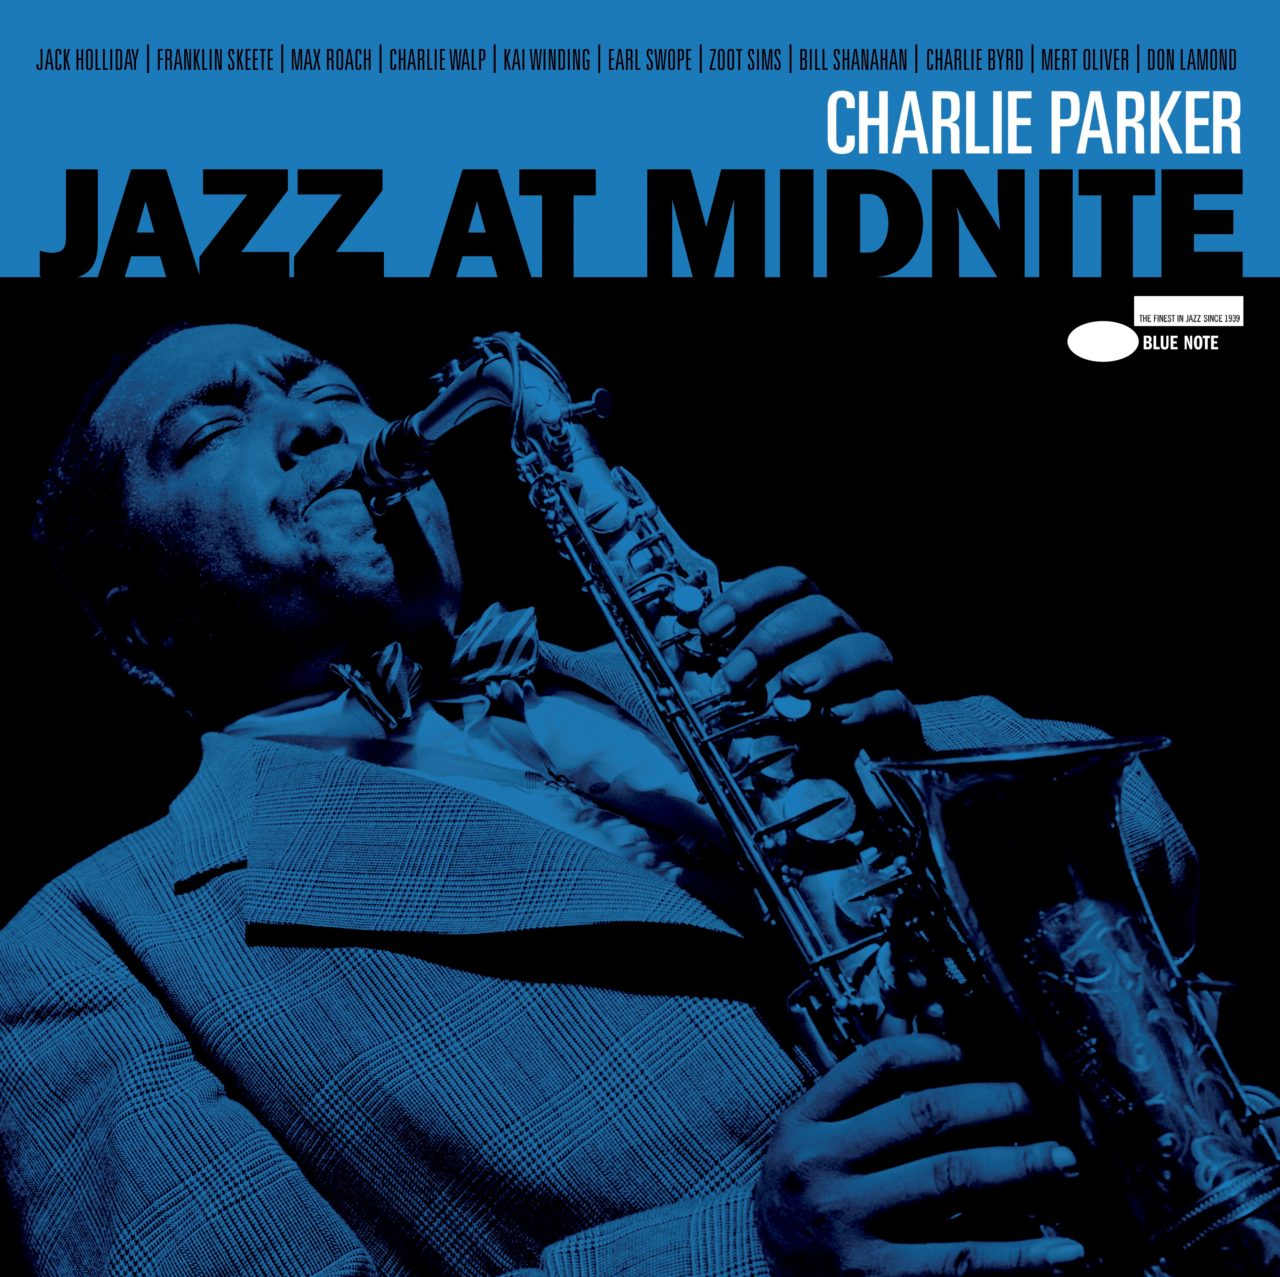 Charlie-Parker-Jazz-At-Midnite-Cover-Final-1598654873